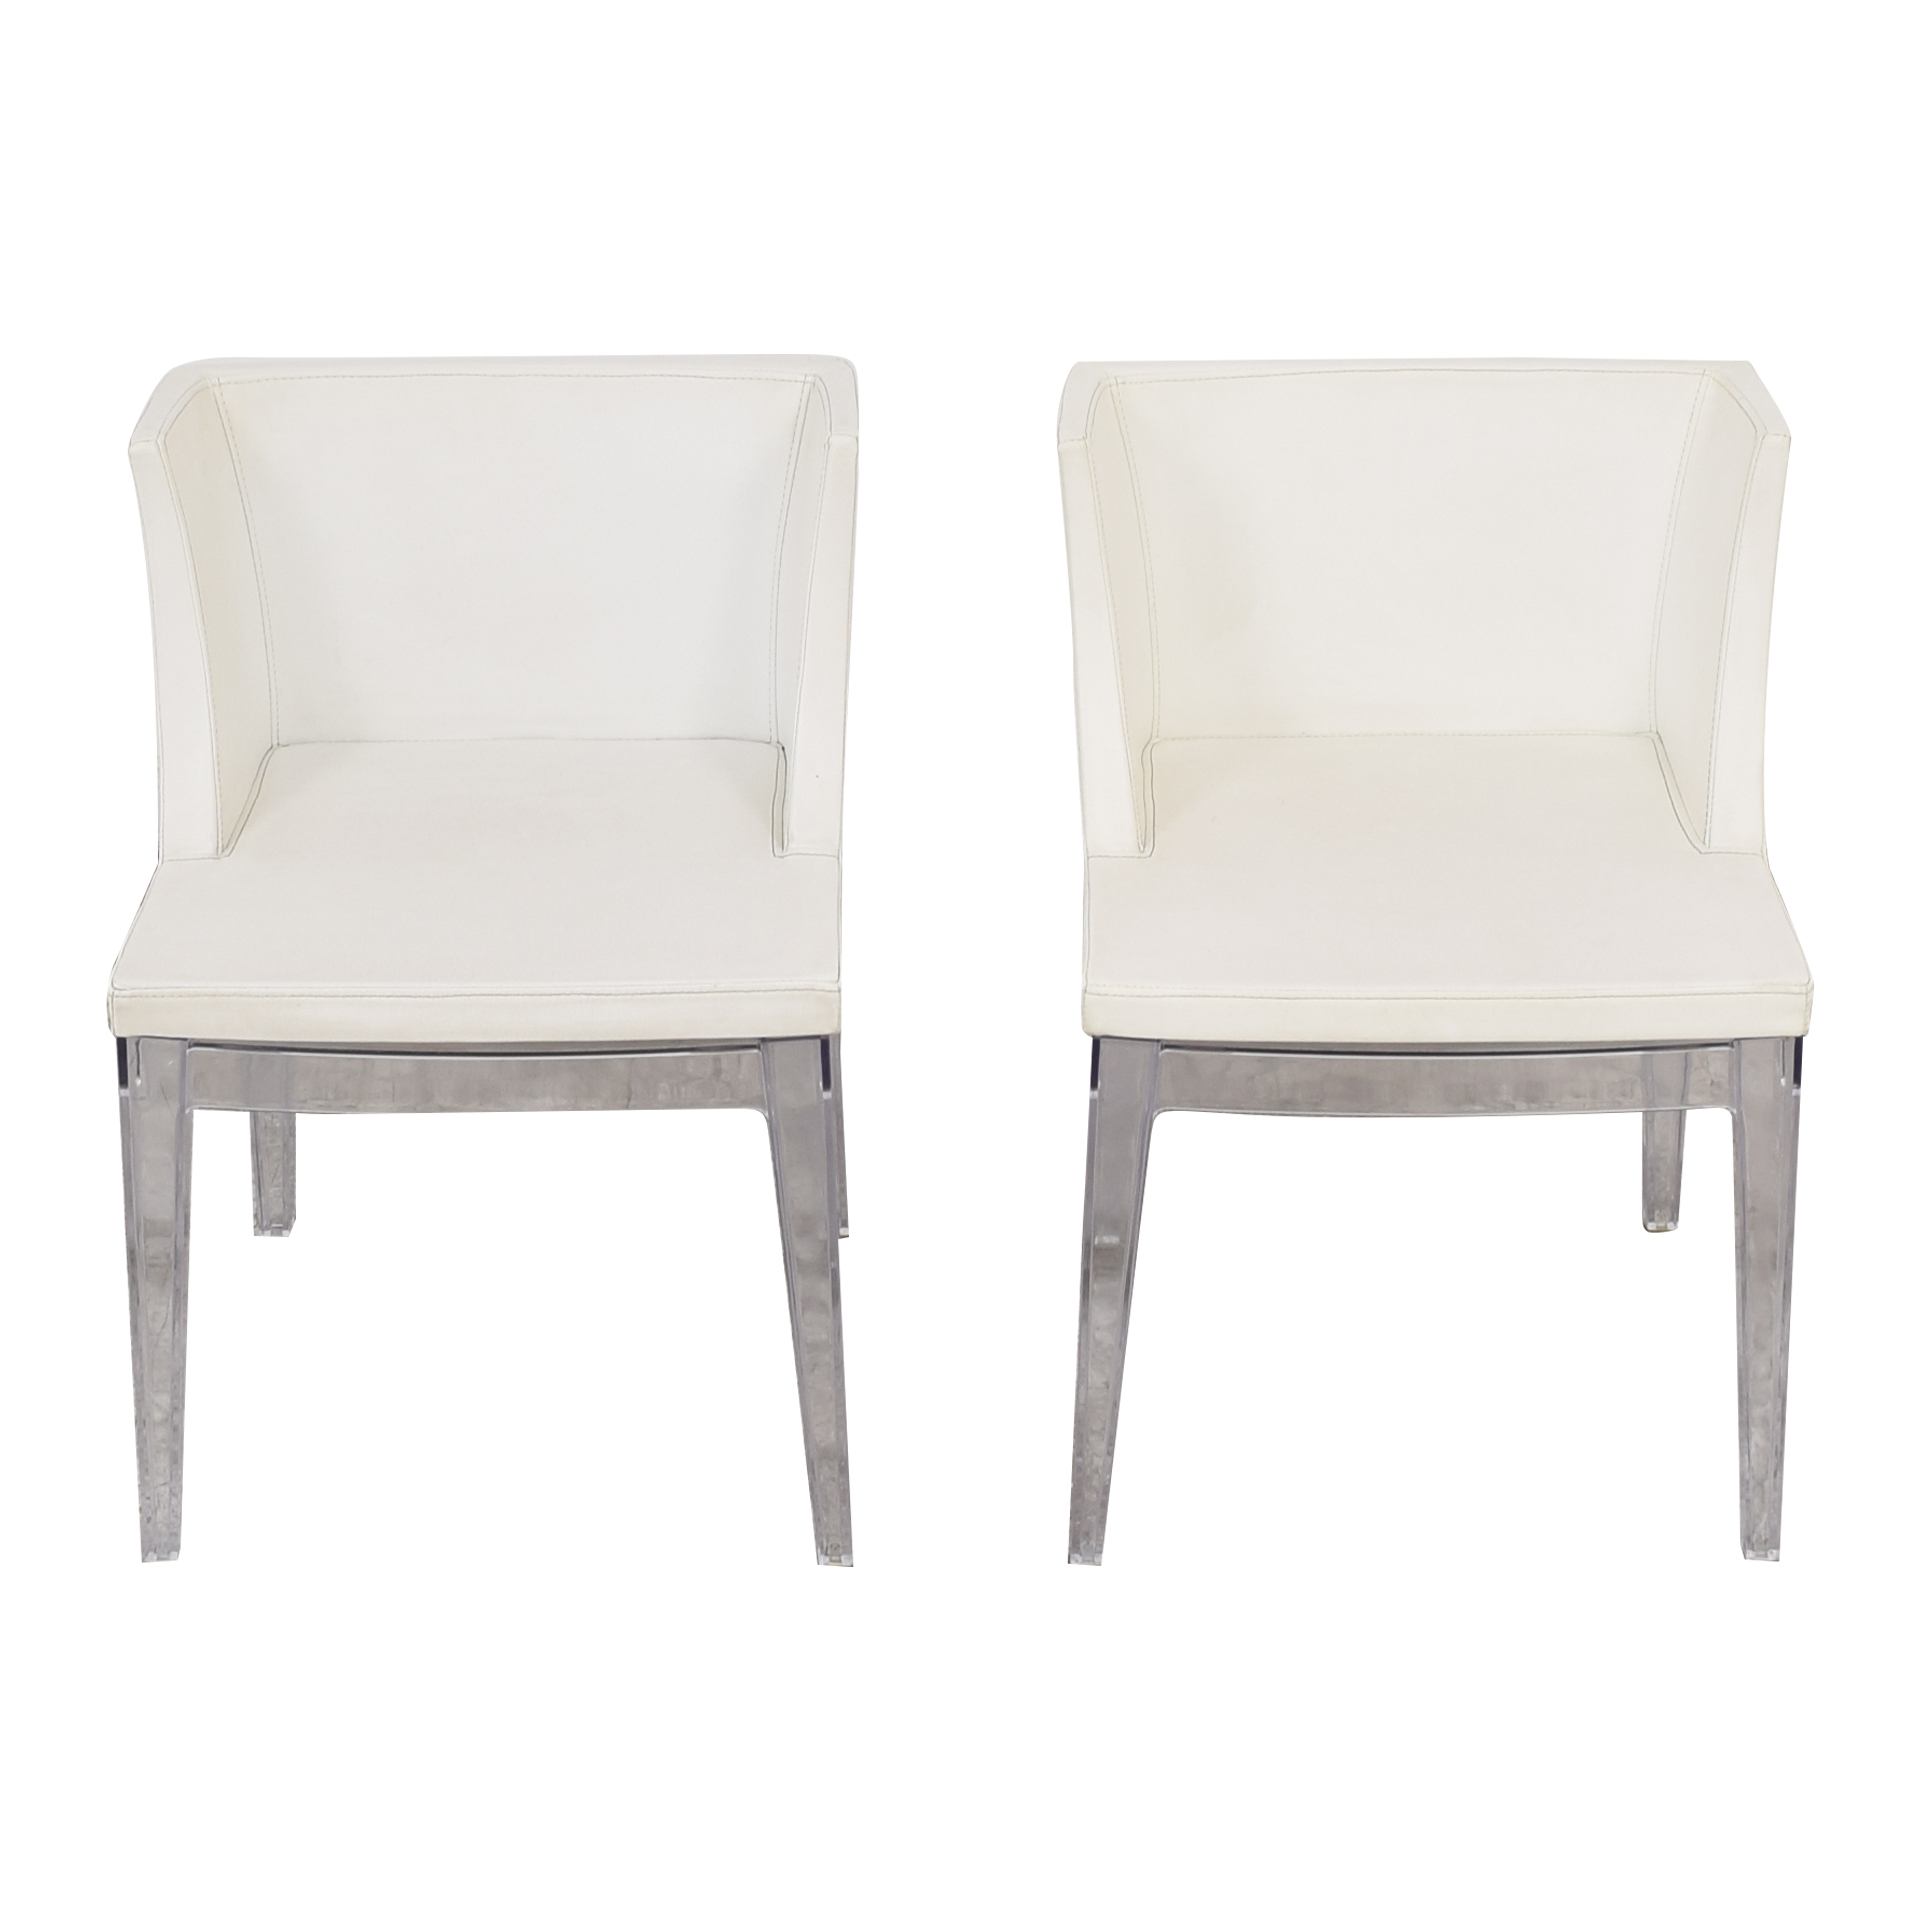 Mademoiselle-Style Chairs